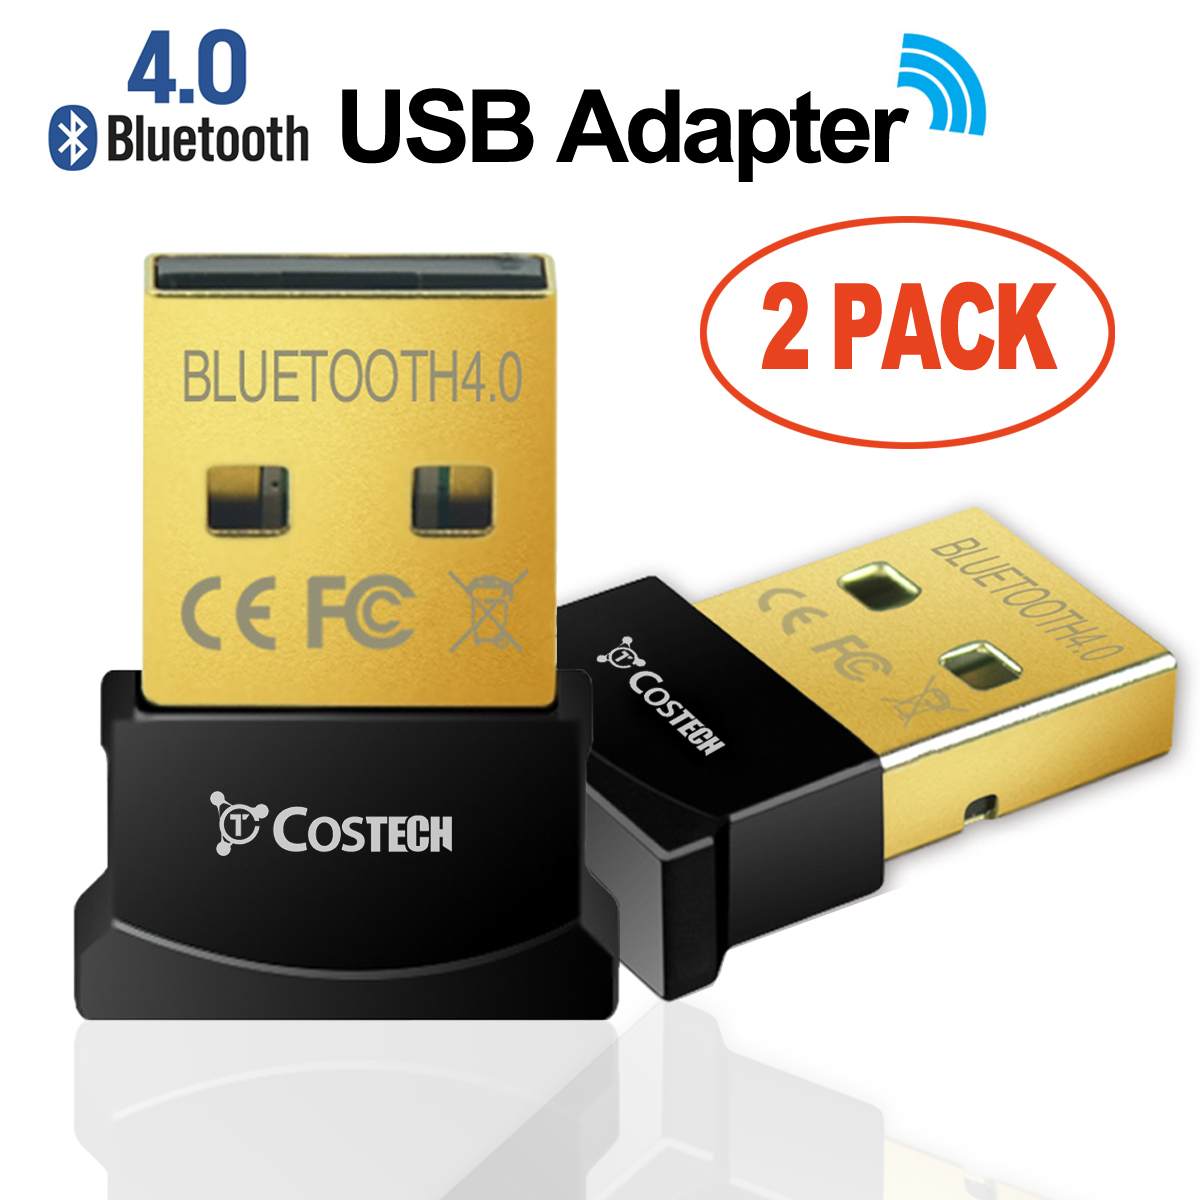 Costech Bluetooth 4.0 USB Adapter Gold Plated Micro Dongle 33ft/10m Compatible with Windows 10,8.1/8,7,Vista, XP, 32/64 Bit for Desktop , Laptop, computers (2 Pack)